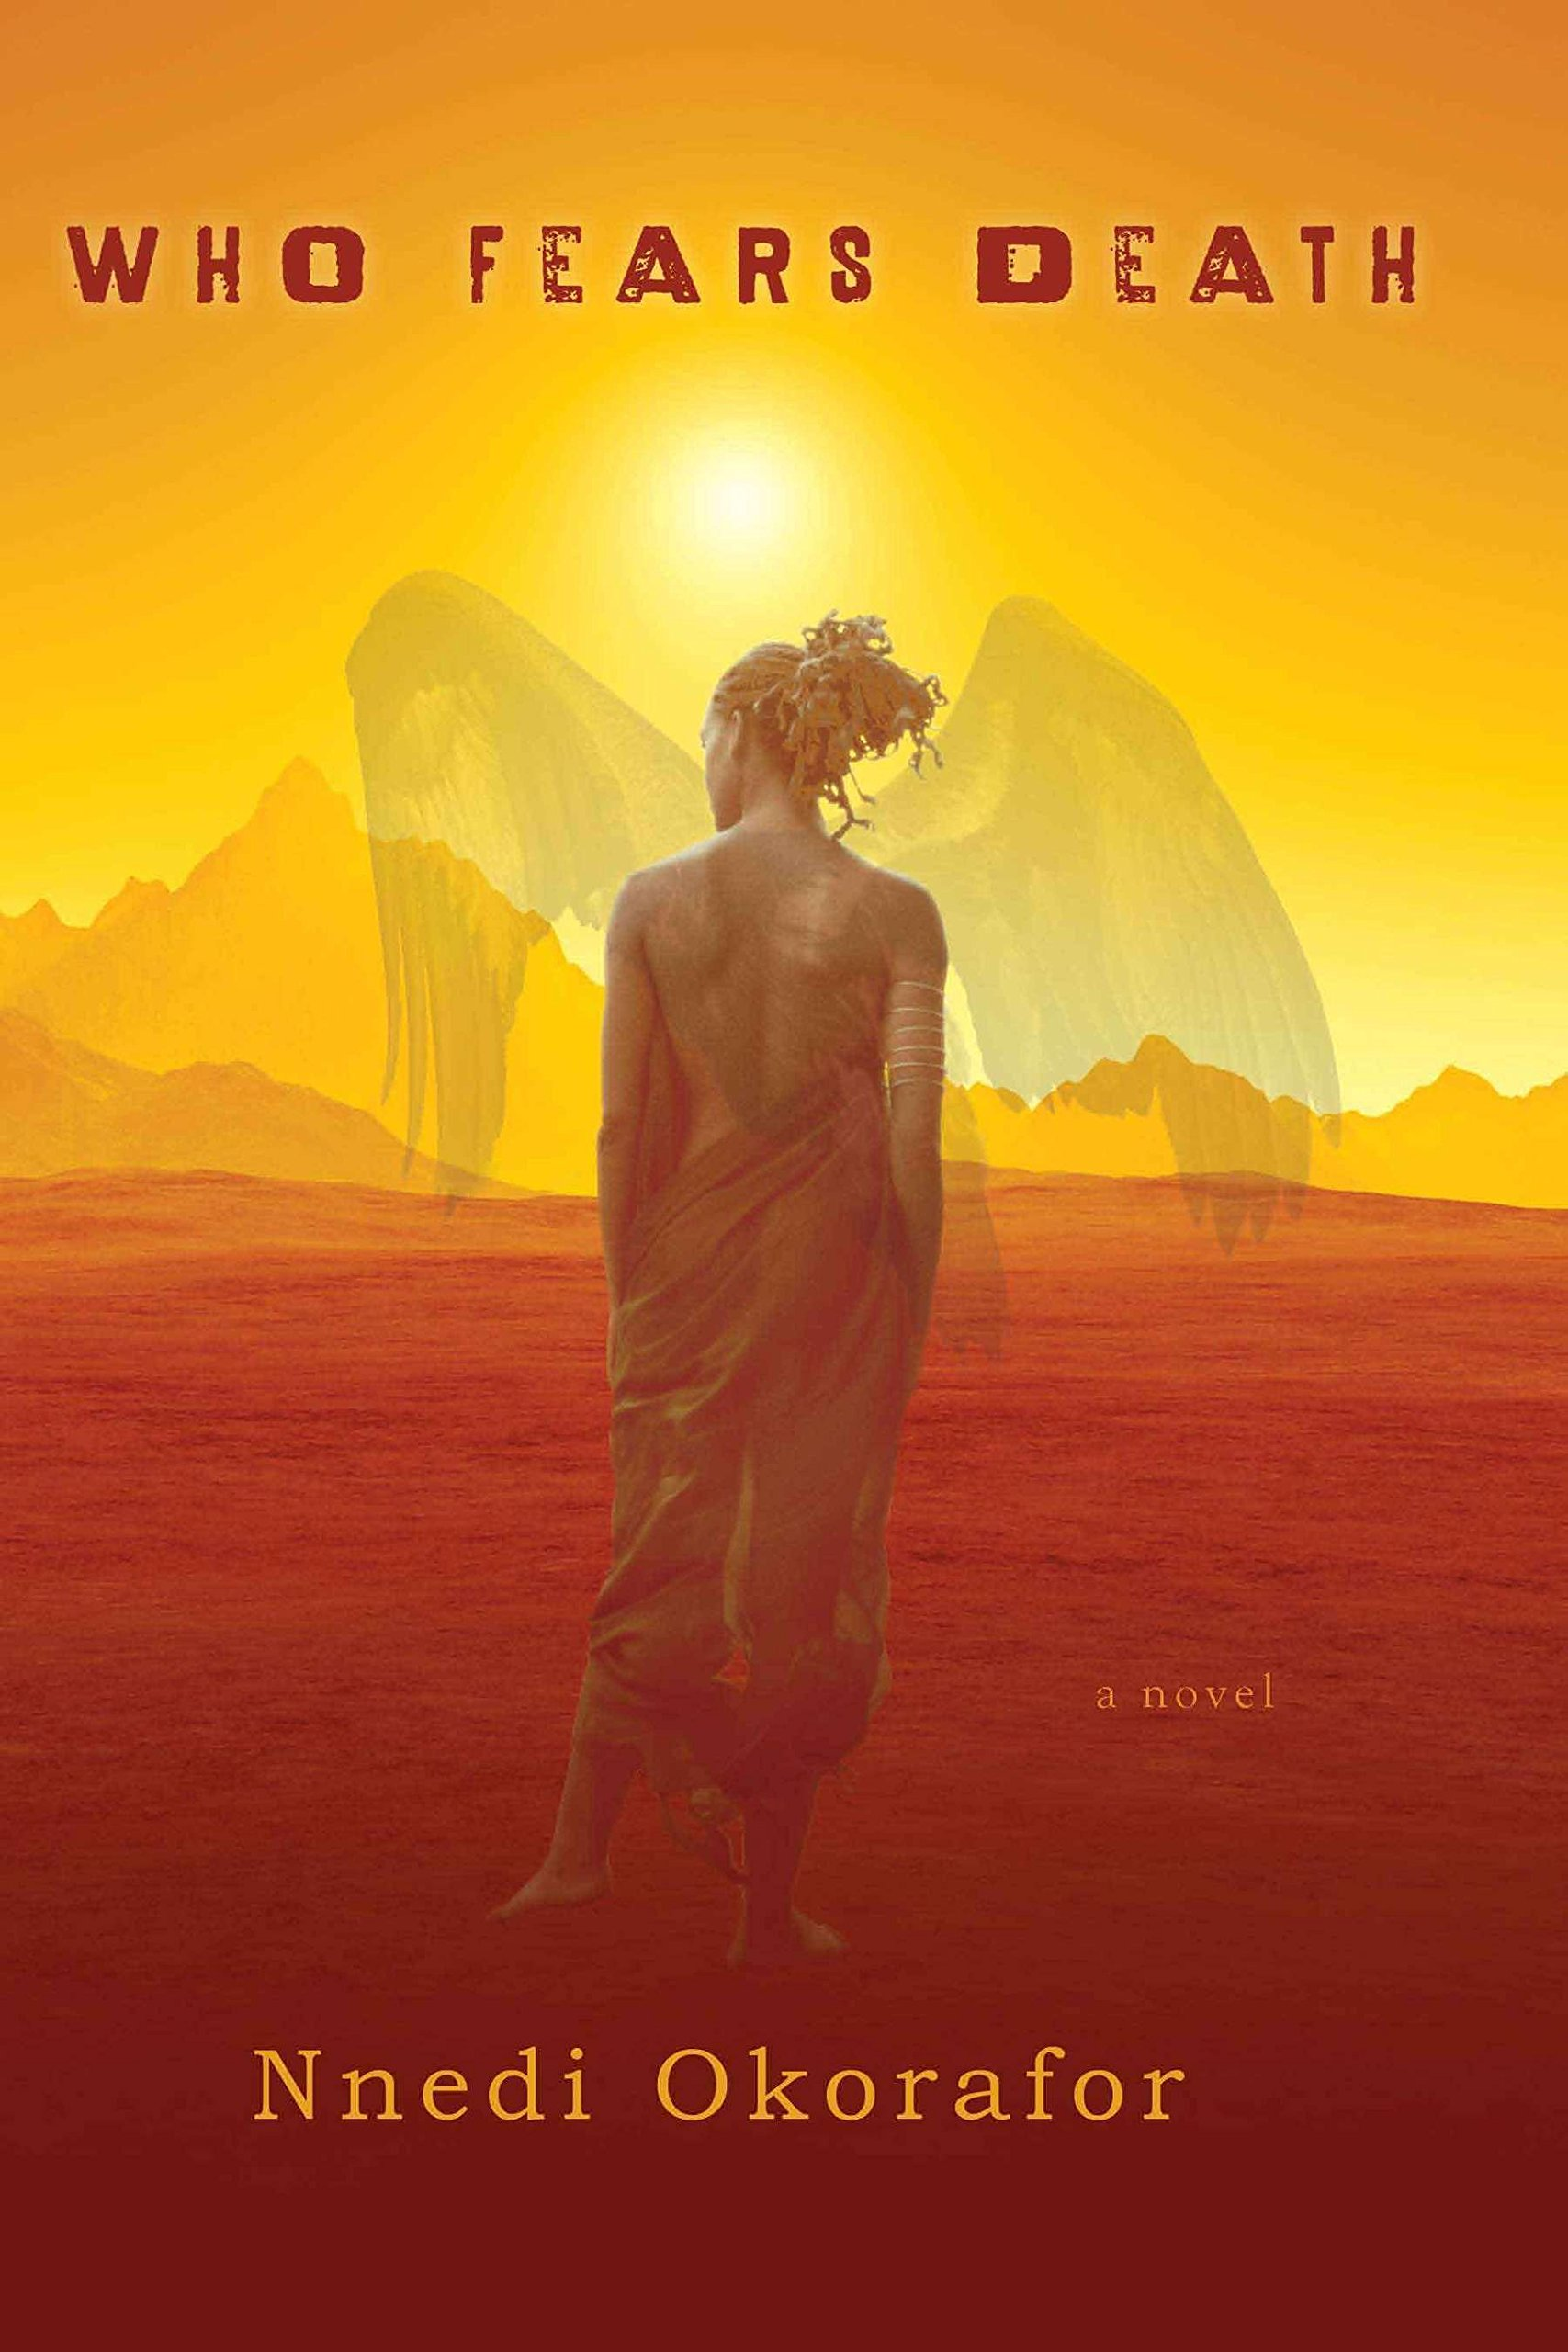 Who Fears Death Mass Market Paperback – February 4, 2014 Nnedi Okorafor DAW 0756407281 Fantasy - General